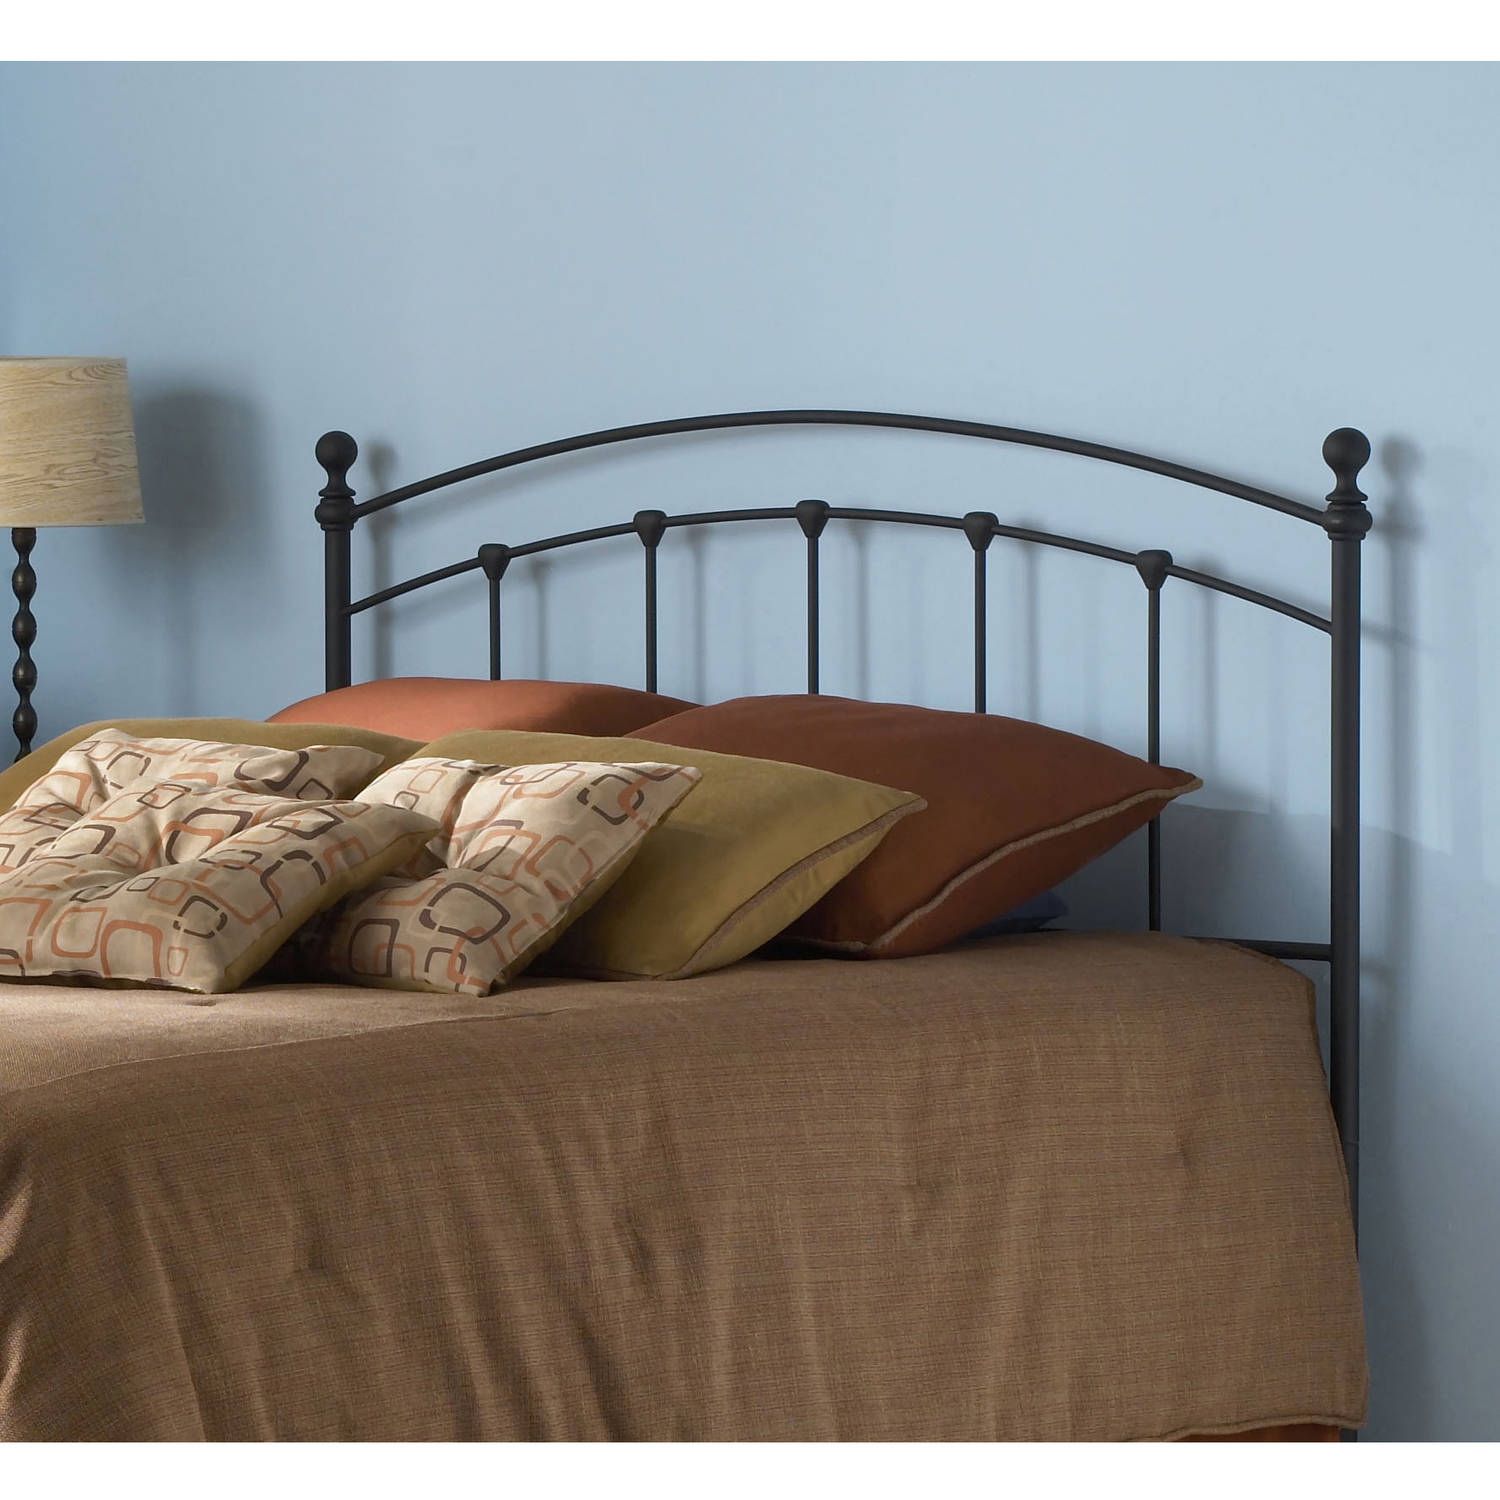 Fashion Bed Group by Leggett & Platt Sanford Matte Black Headboard, Multiple Sizes by Fashion Bed Group